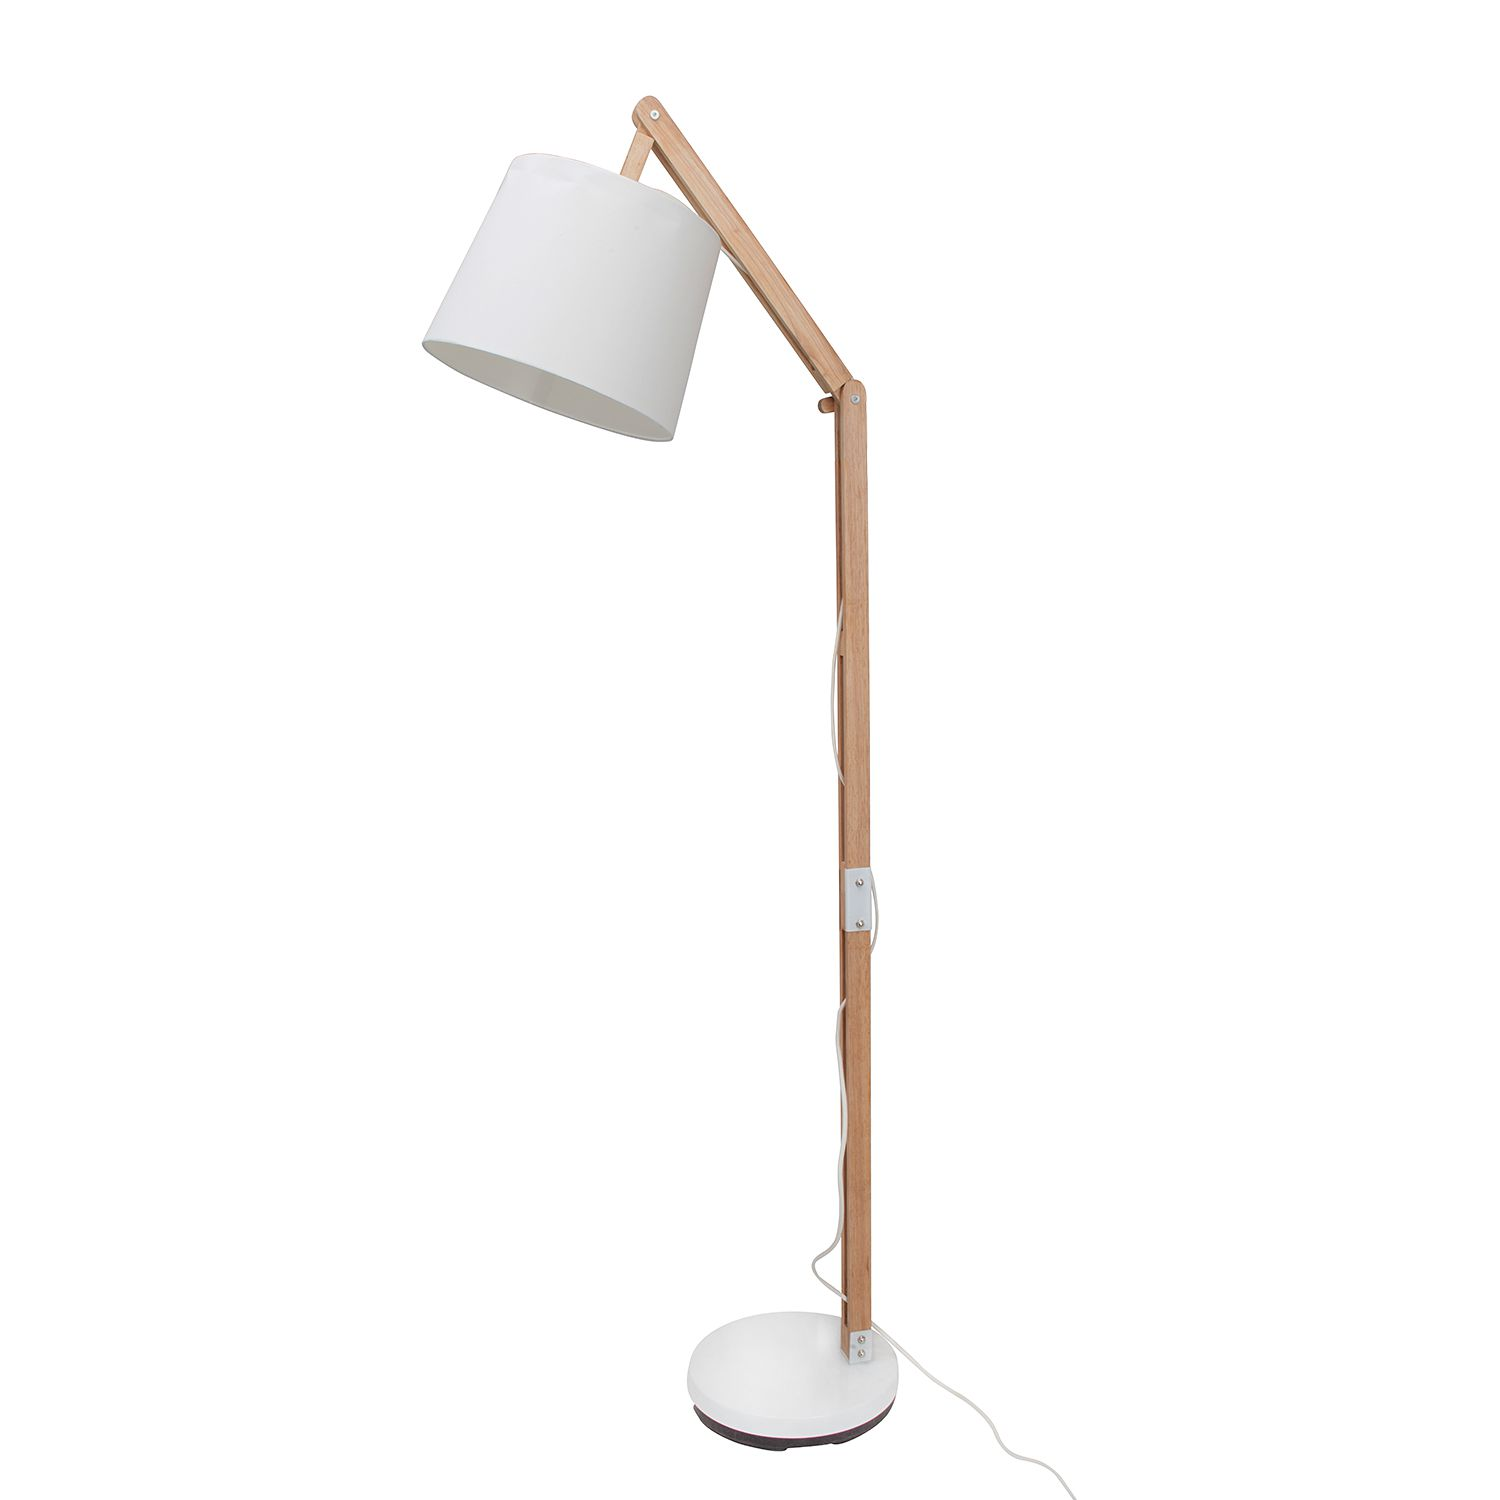 Home24 Stehleuchte Carlyn Lamp Light Table Lamp Desk Lamp